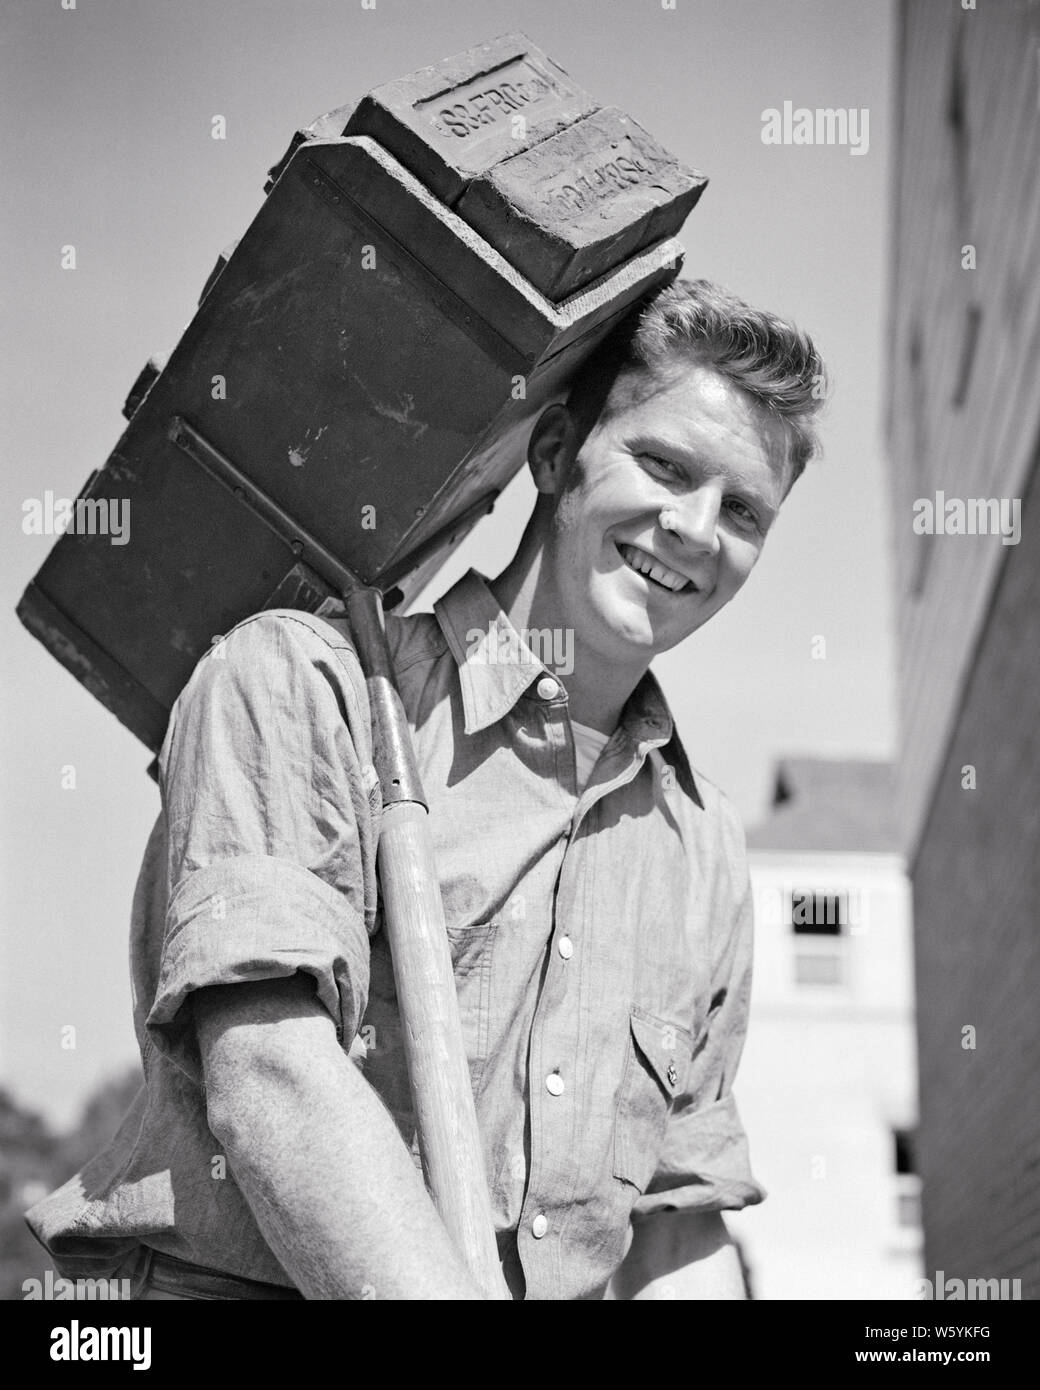 1940s SMILING MAN CONSTRUCTION WORKMAN MASON LOOKING AT CAMERA AT HOUSE BUILDING SITE CARRYING A HOD FULL OF BRICKS - b18748 HAR001 HARS 1 FITNESS FACIAL MORTAR CAREER HEALTHY YOUNG ADULT BALANCE SAFETY STRONG WORKMAN PLEASED JOY LIFESTYLE HOUSES JOBS SITE BRICKS HALF-LENGTH PHYSICAL FITNESS PERSONS RESIDENTIAL MALES RISK BUILDINGS PROFESSION CONFIDENCE EXPRESSIONS B&W EYE CONTACT SKILL ACTIVITY MATERIAL OCCUPATION HAPPINESS PHYSICAL SKILLS CHEERFUL STRENGTH CAREERS LOW ANGLE PRIDE MASON A AT OF HOMES OCCUPATIONS SMILES CONCEPTUAL FLEXIBILITY JOYFUL MUSCLES RESIDENCE OR MID-ADULT MID-ADULT MAN Stock Photo